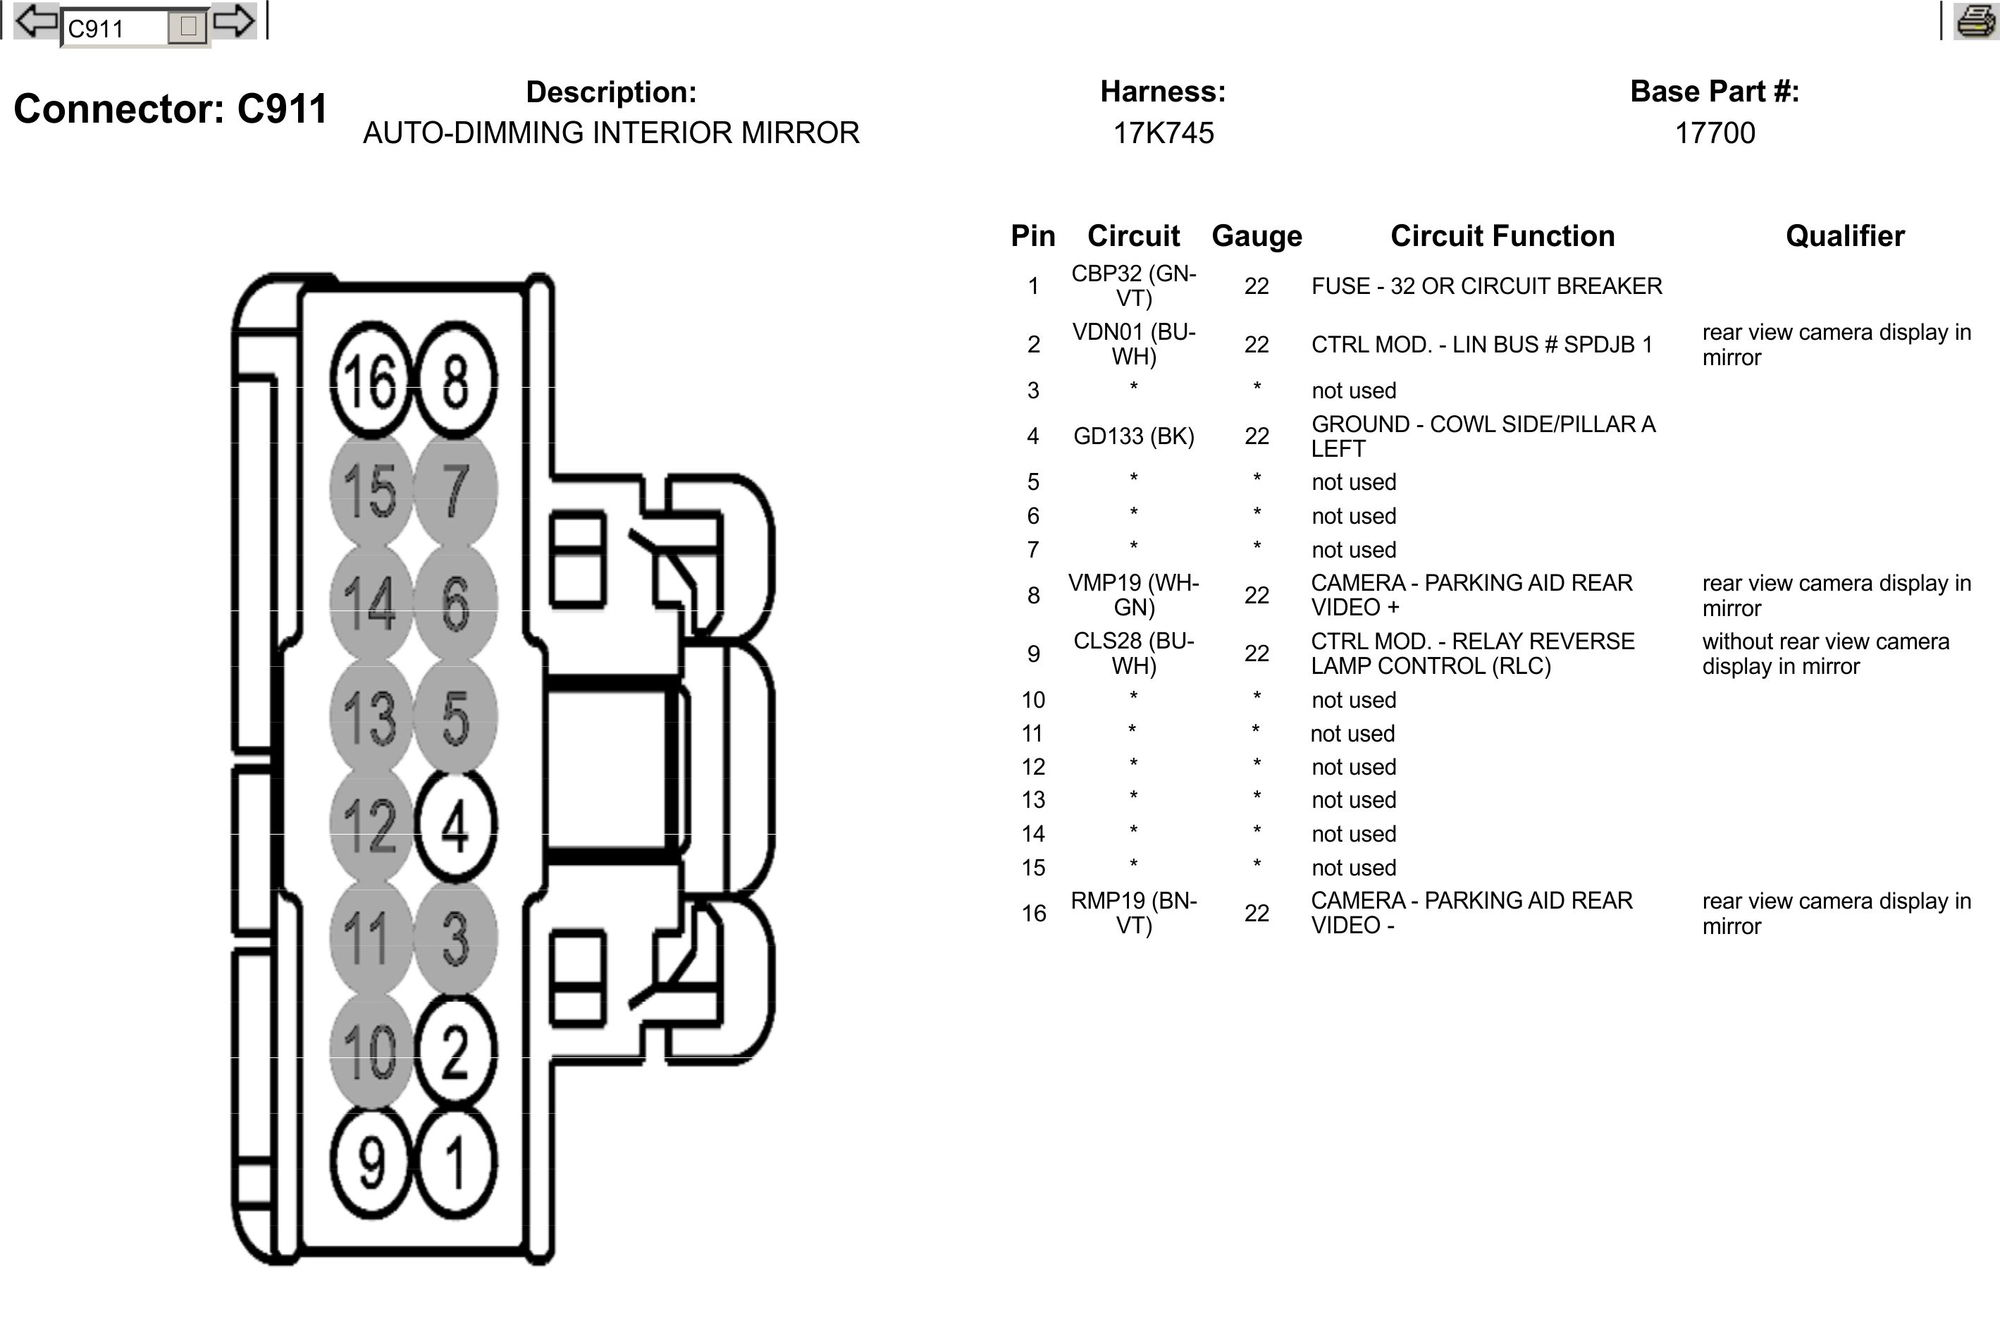 Gm 7 Pin Trailer Wiring in addition Minute Mount 2 Plow Wiring Diagram F 250 likewise 1384953 Need Wiring Pinout For 2012 Lariat Rear View Mirror Please as well 784 further 7 Pin Wiring Diagram 34265. on ford 7 pin wiring diagram